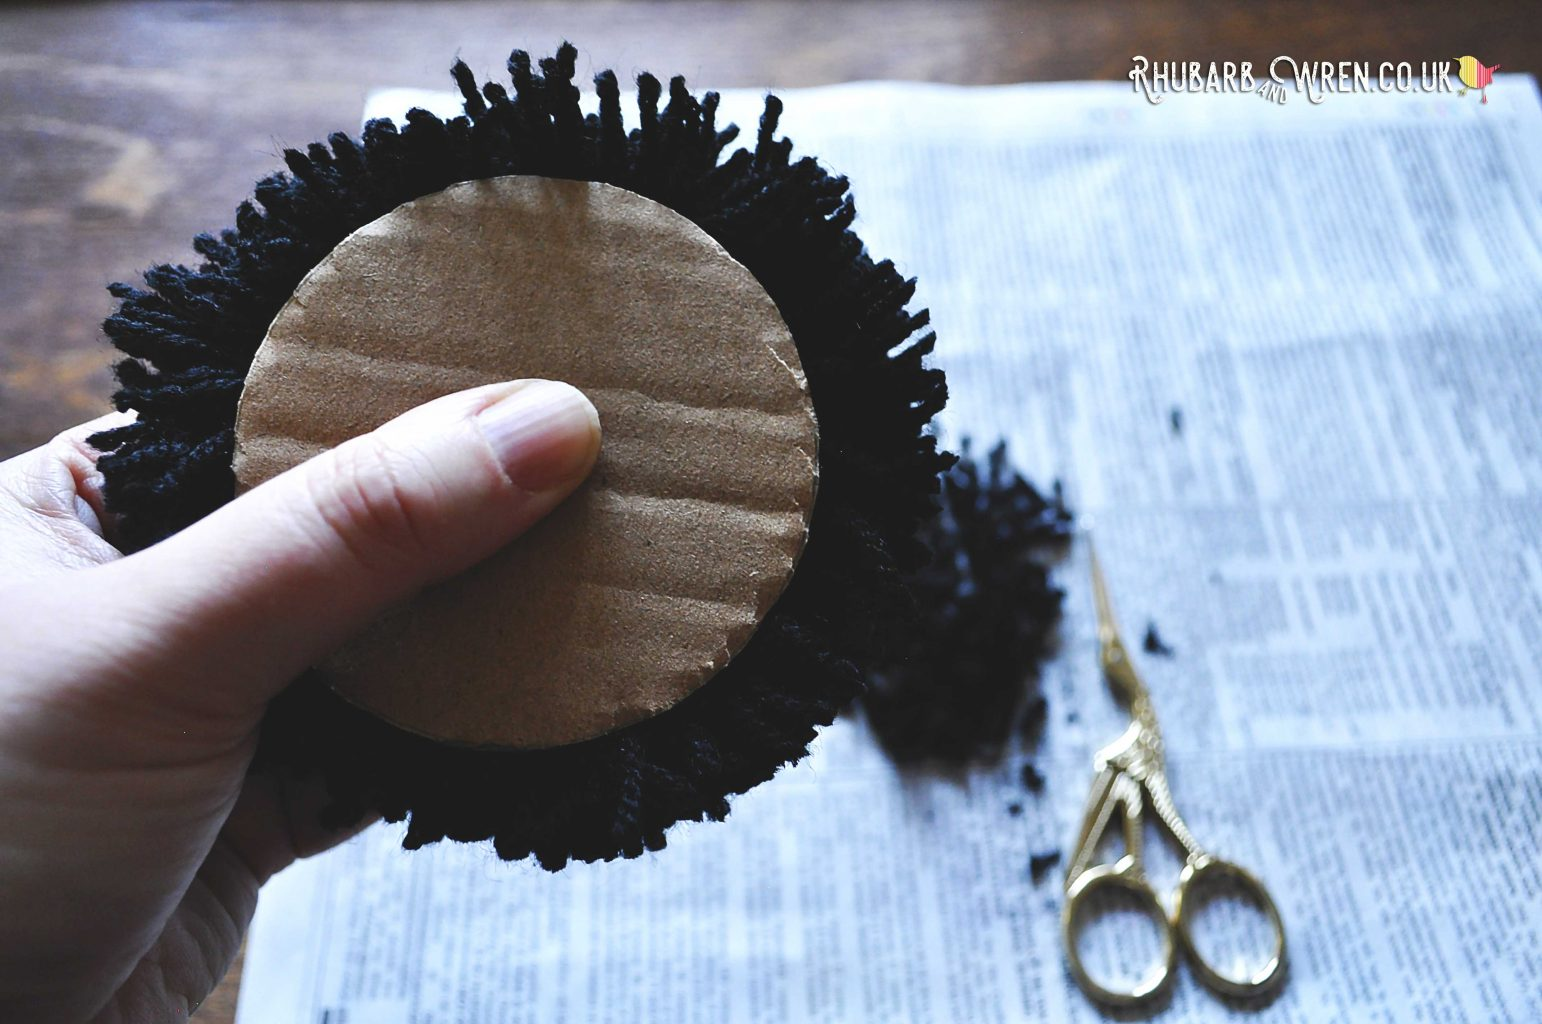 A pompom sandwiched between two circles of cardboard, to be trimmed into a perfect sphere.